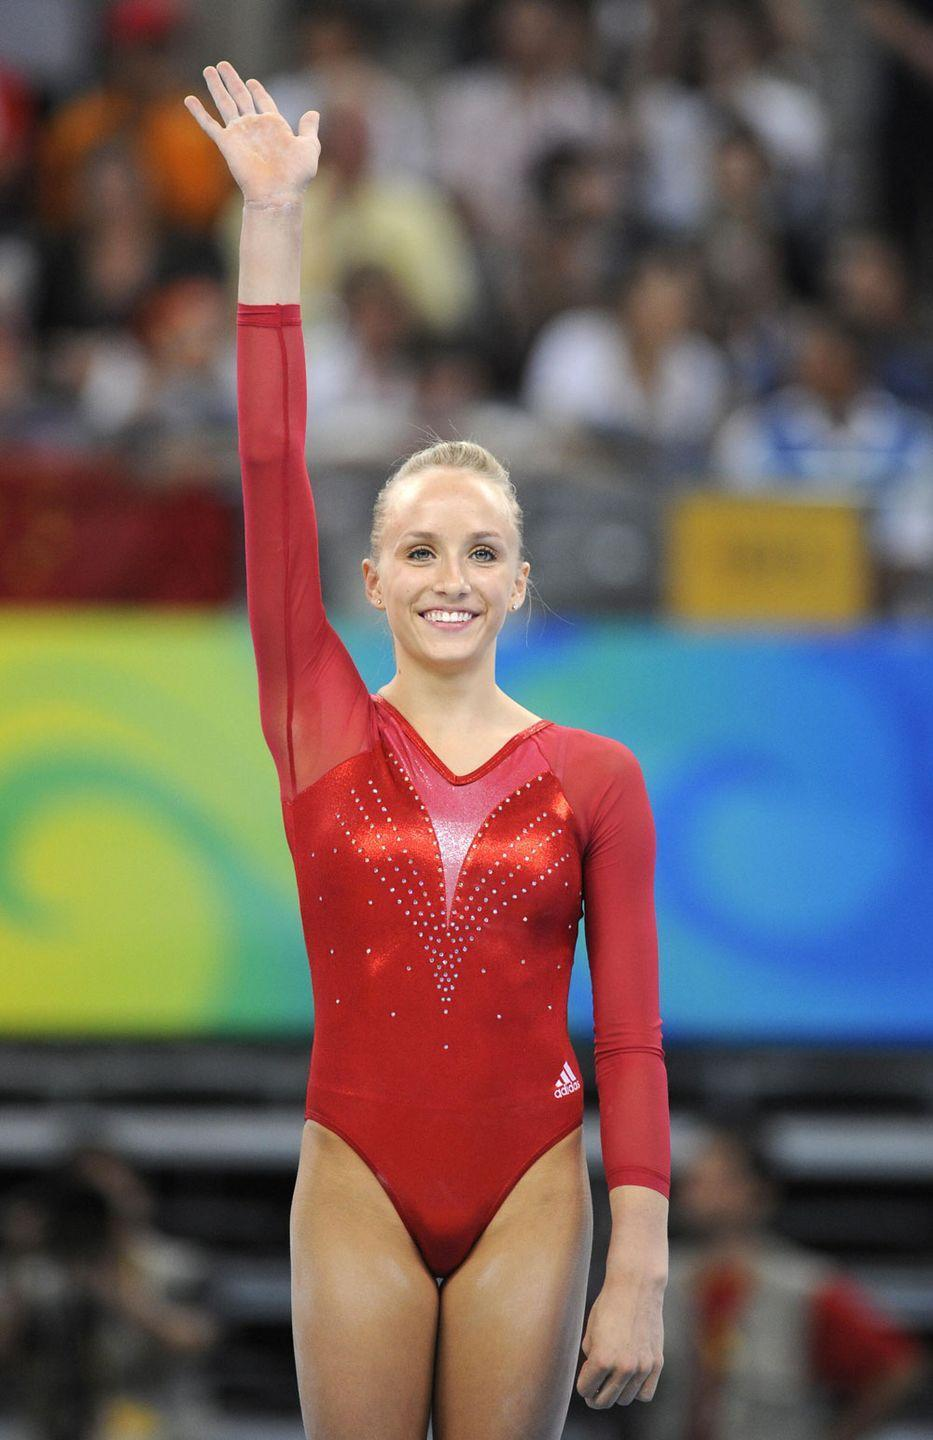 <p><em>Nastia Liukin</em><br></p><p>And again. Is anyone else starting to notice a trend?</p>